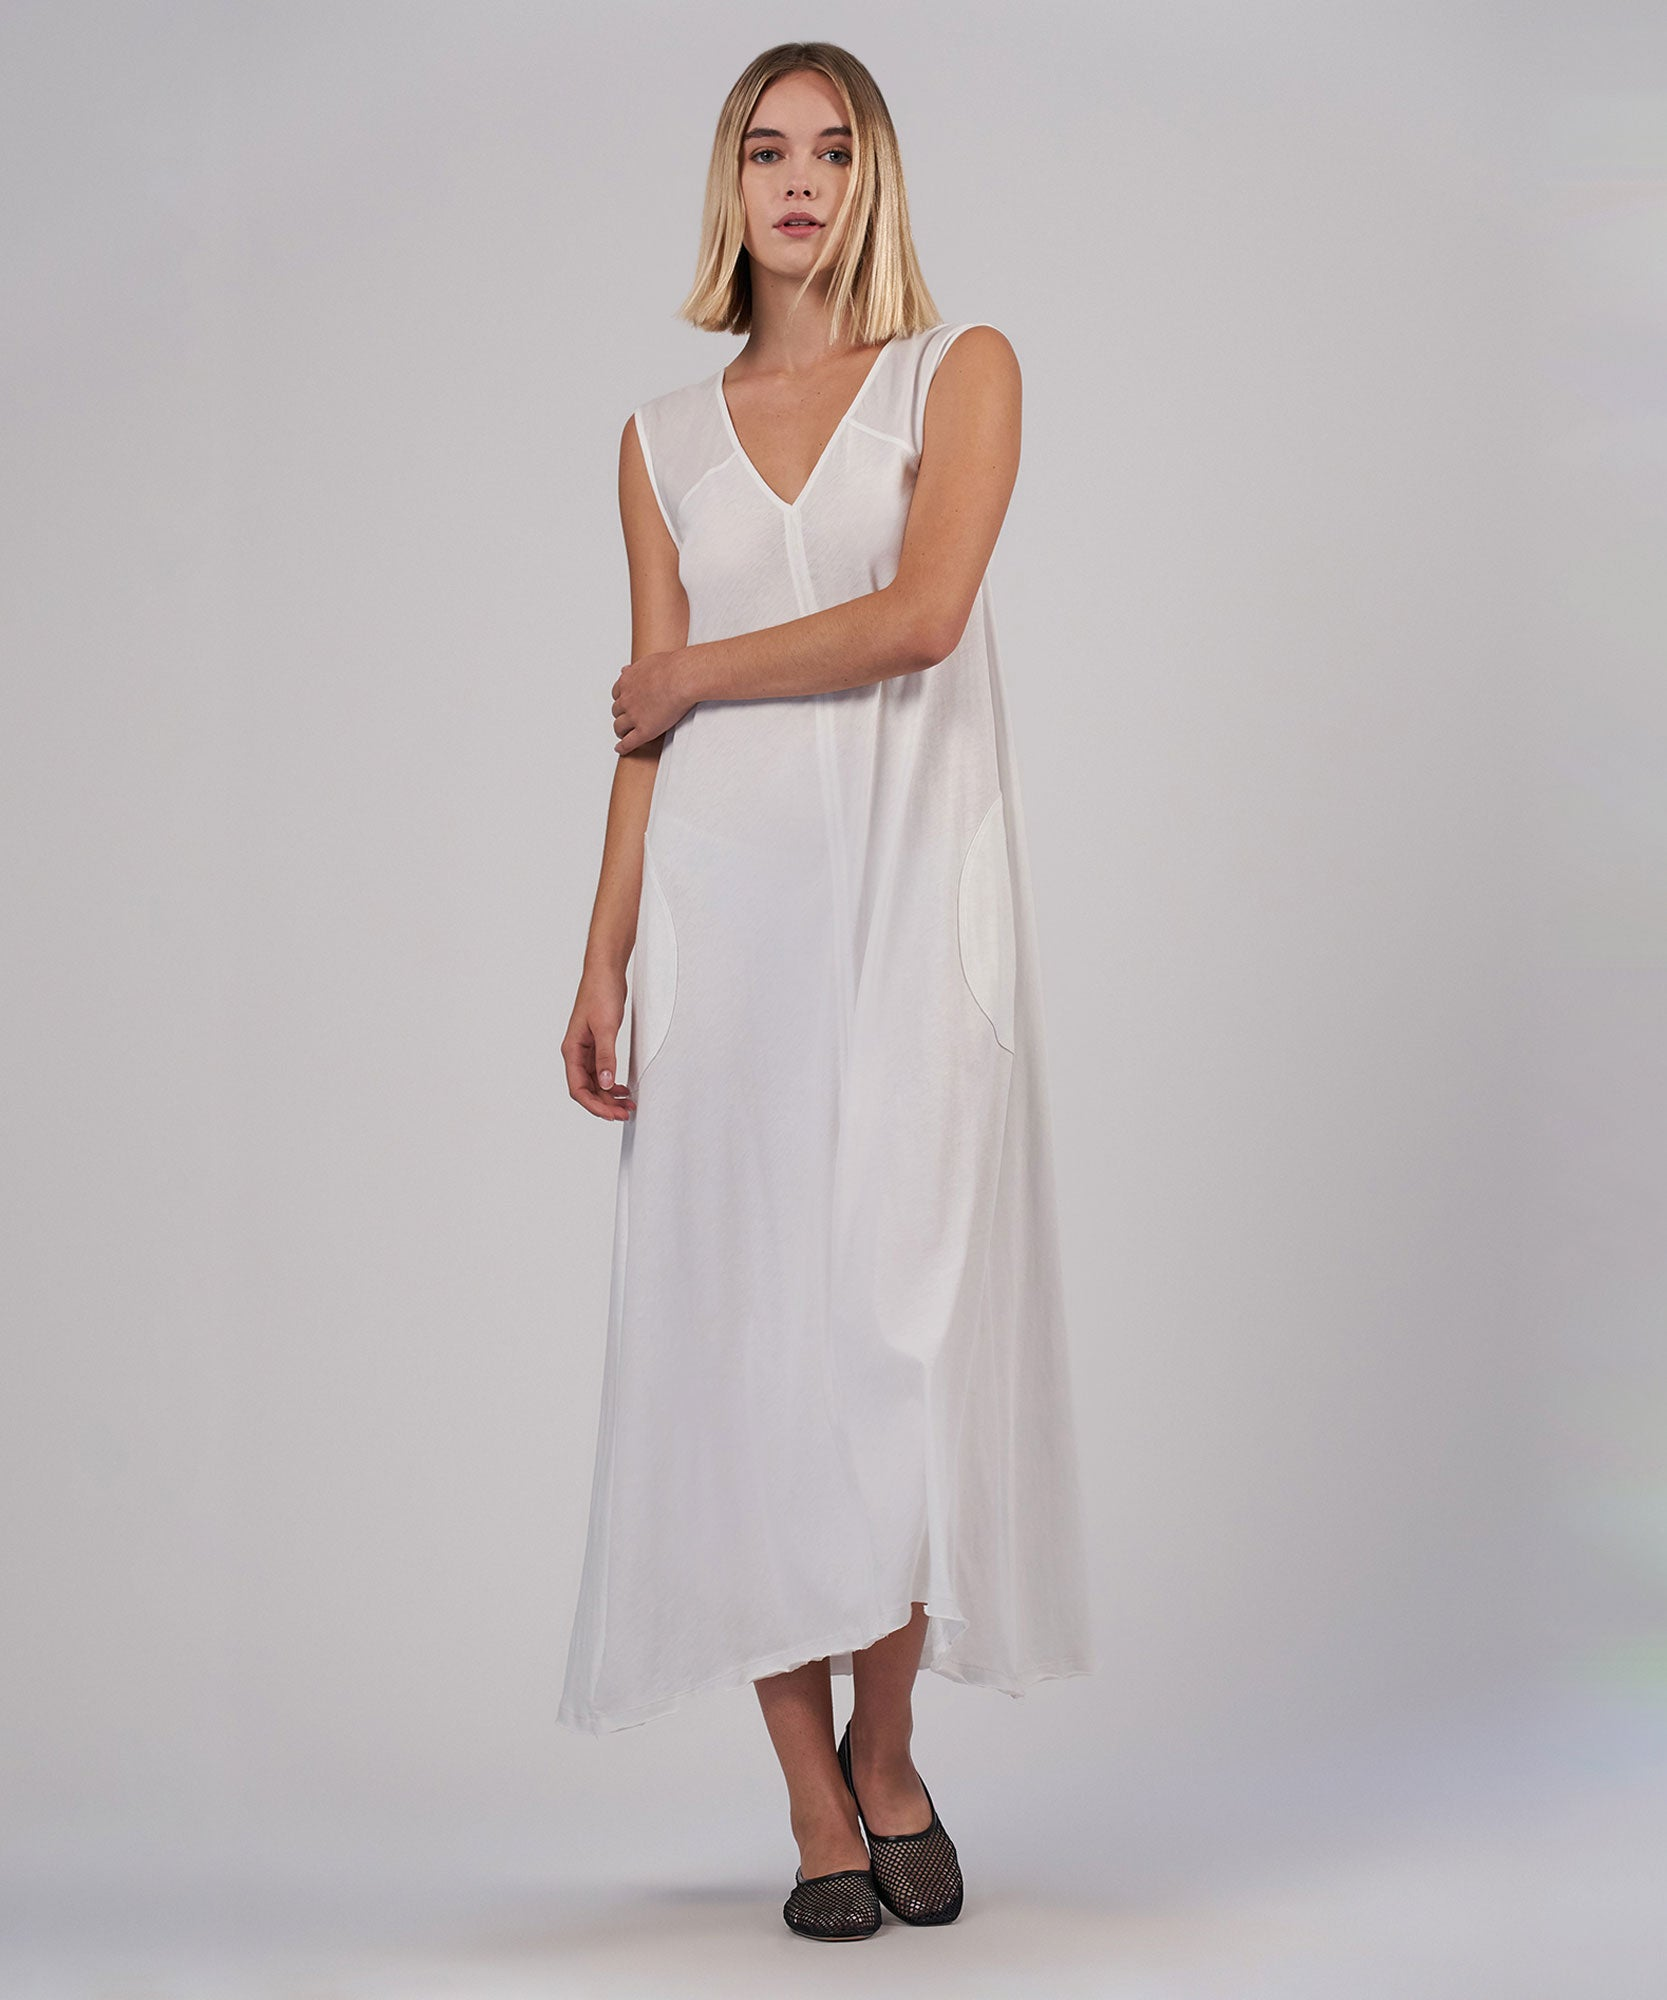 White Sleeveless V-Neck Maxi Dress - Women's Dress by ATM Anthony Thomas Melillo